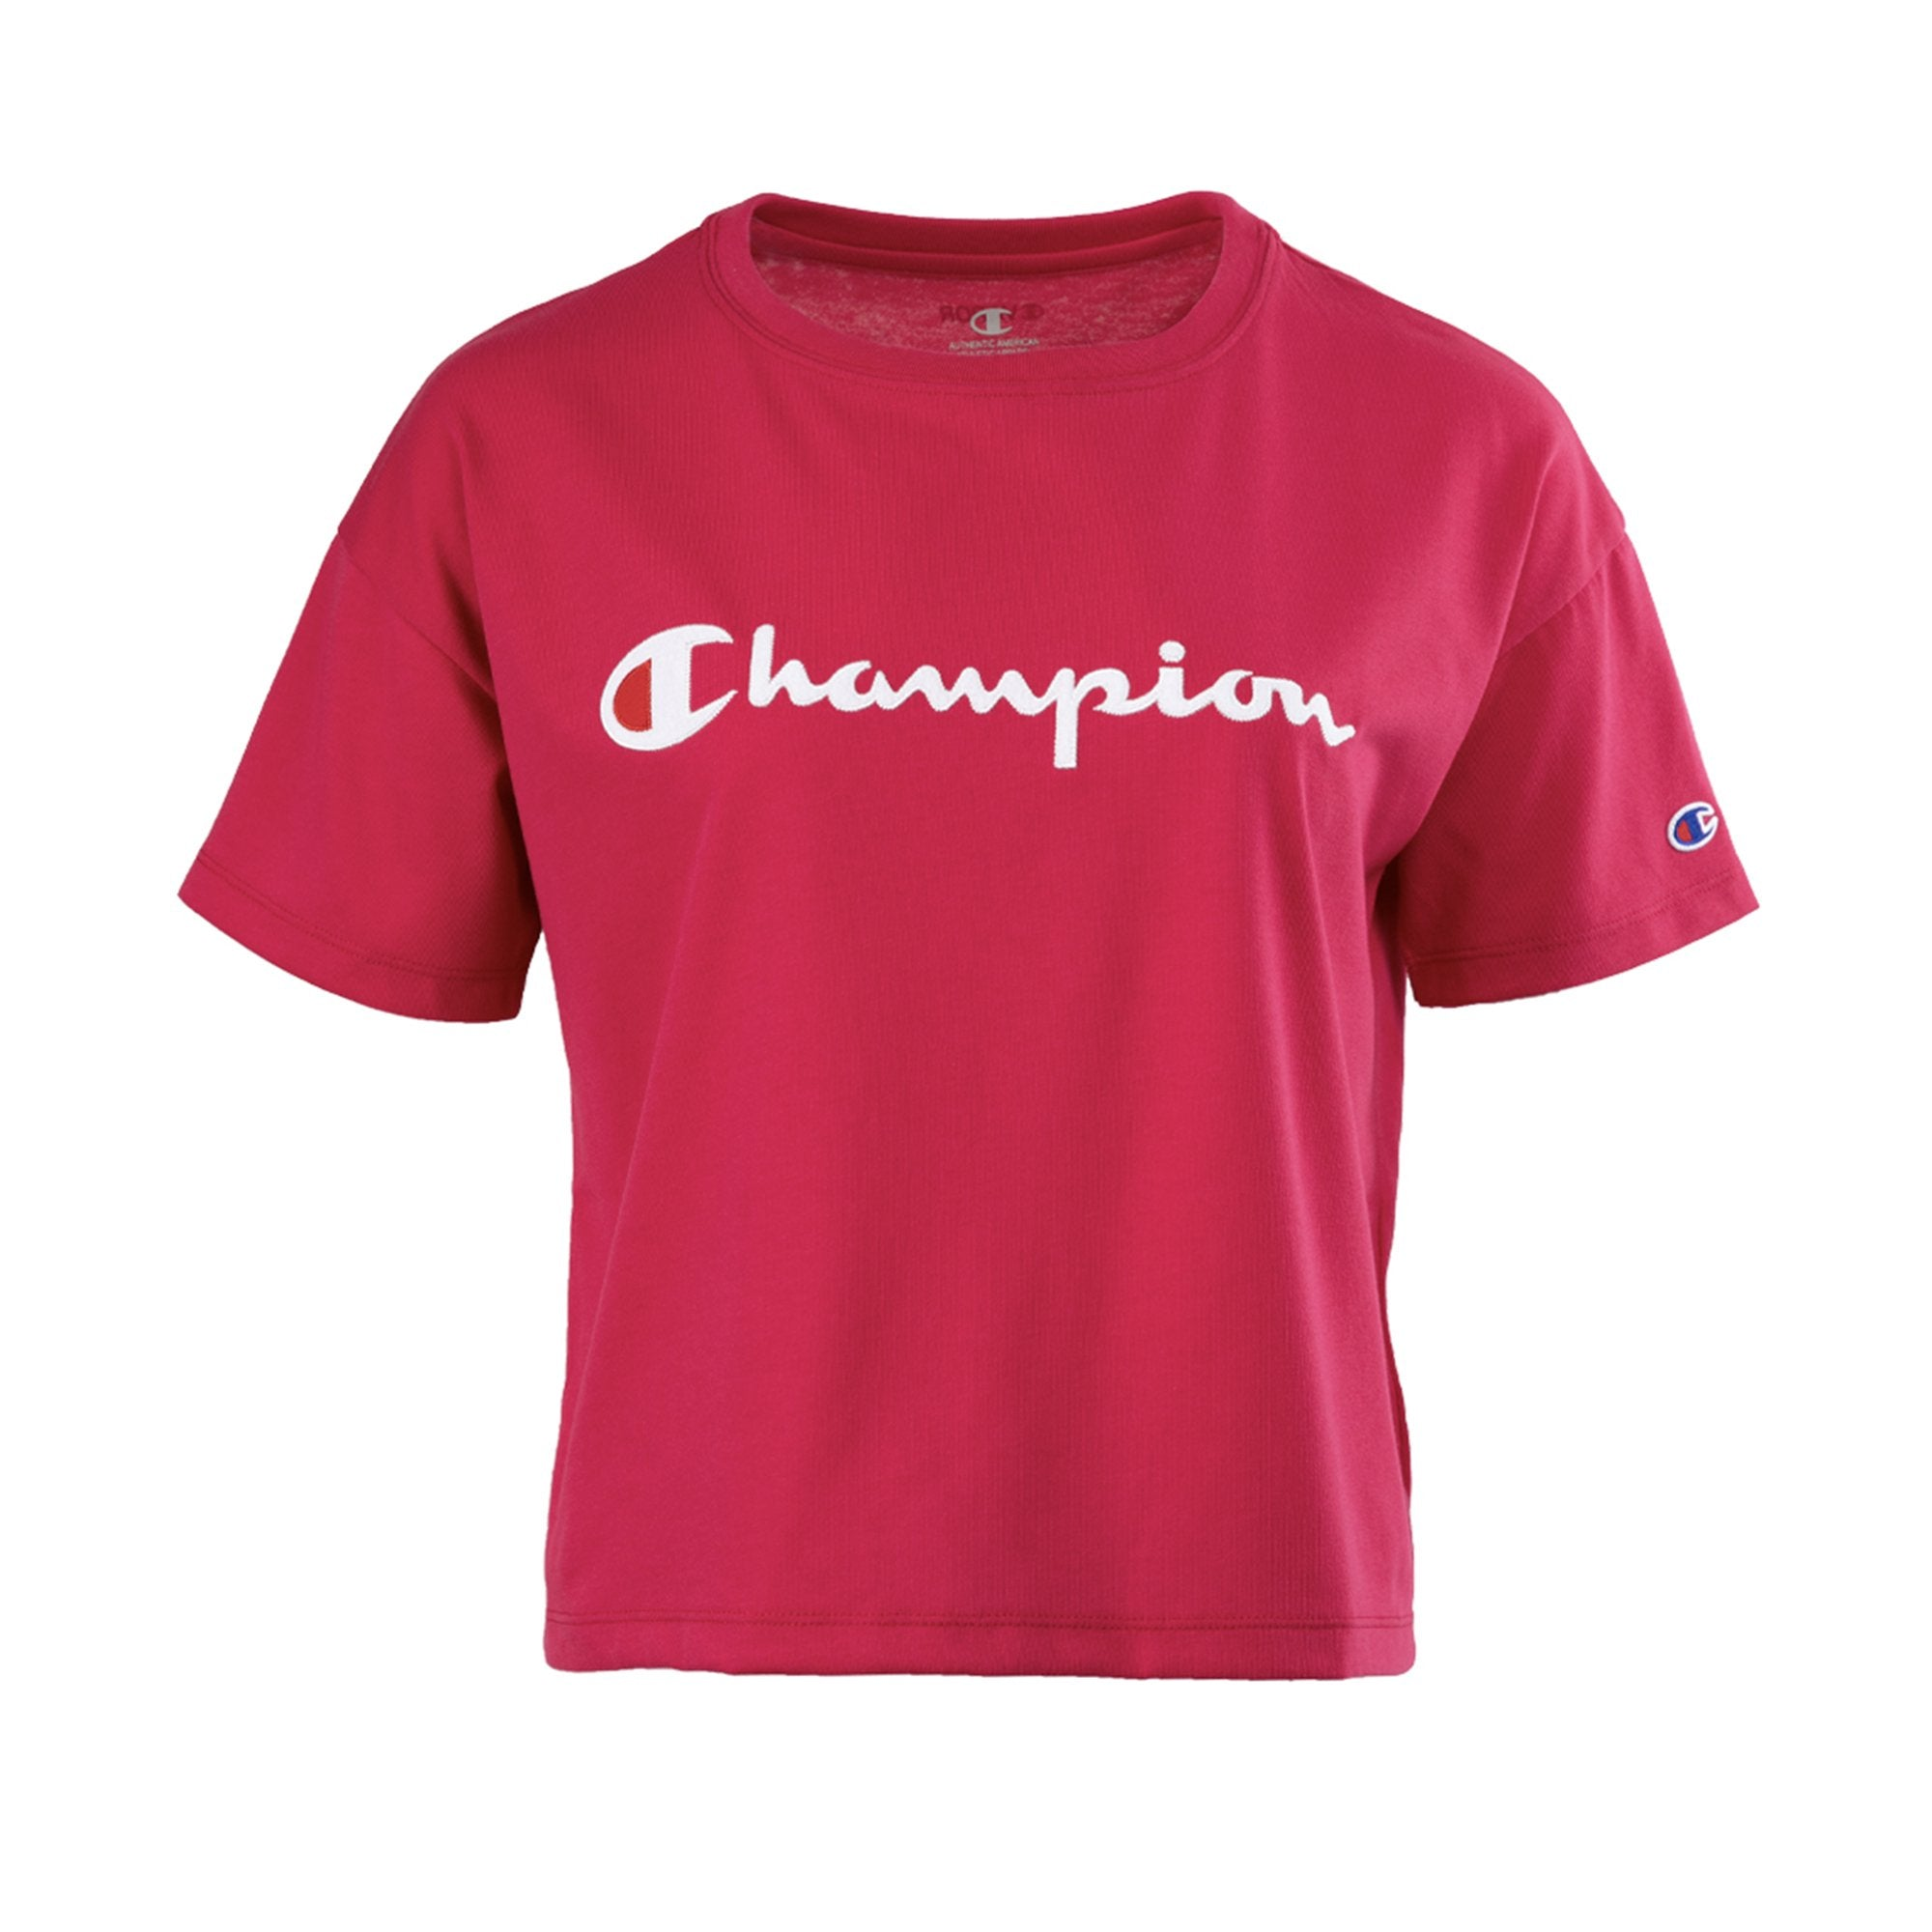 24c0c7488 Champion Shoes & Sportswear Online in Singapore | Royal Sporting House